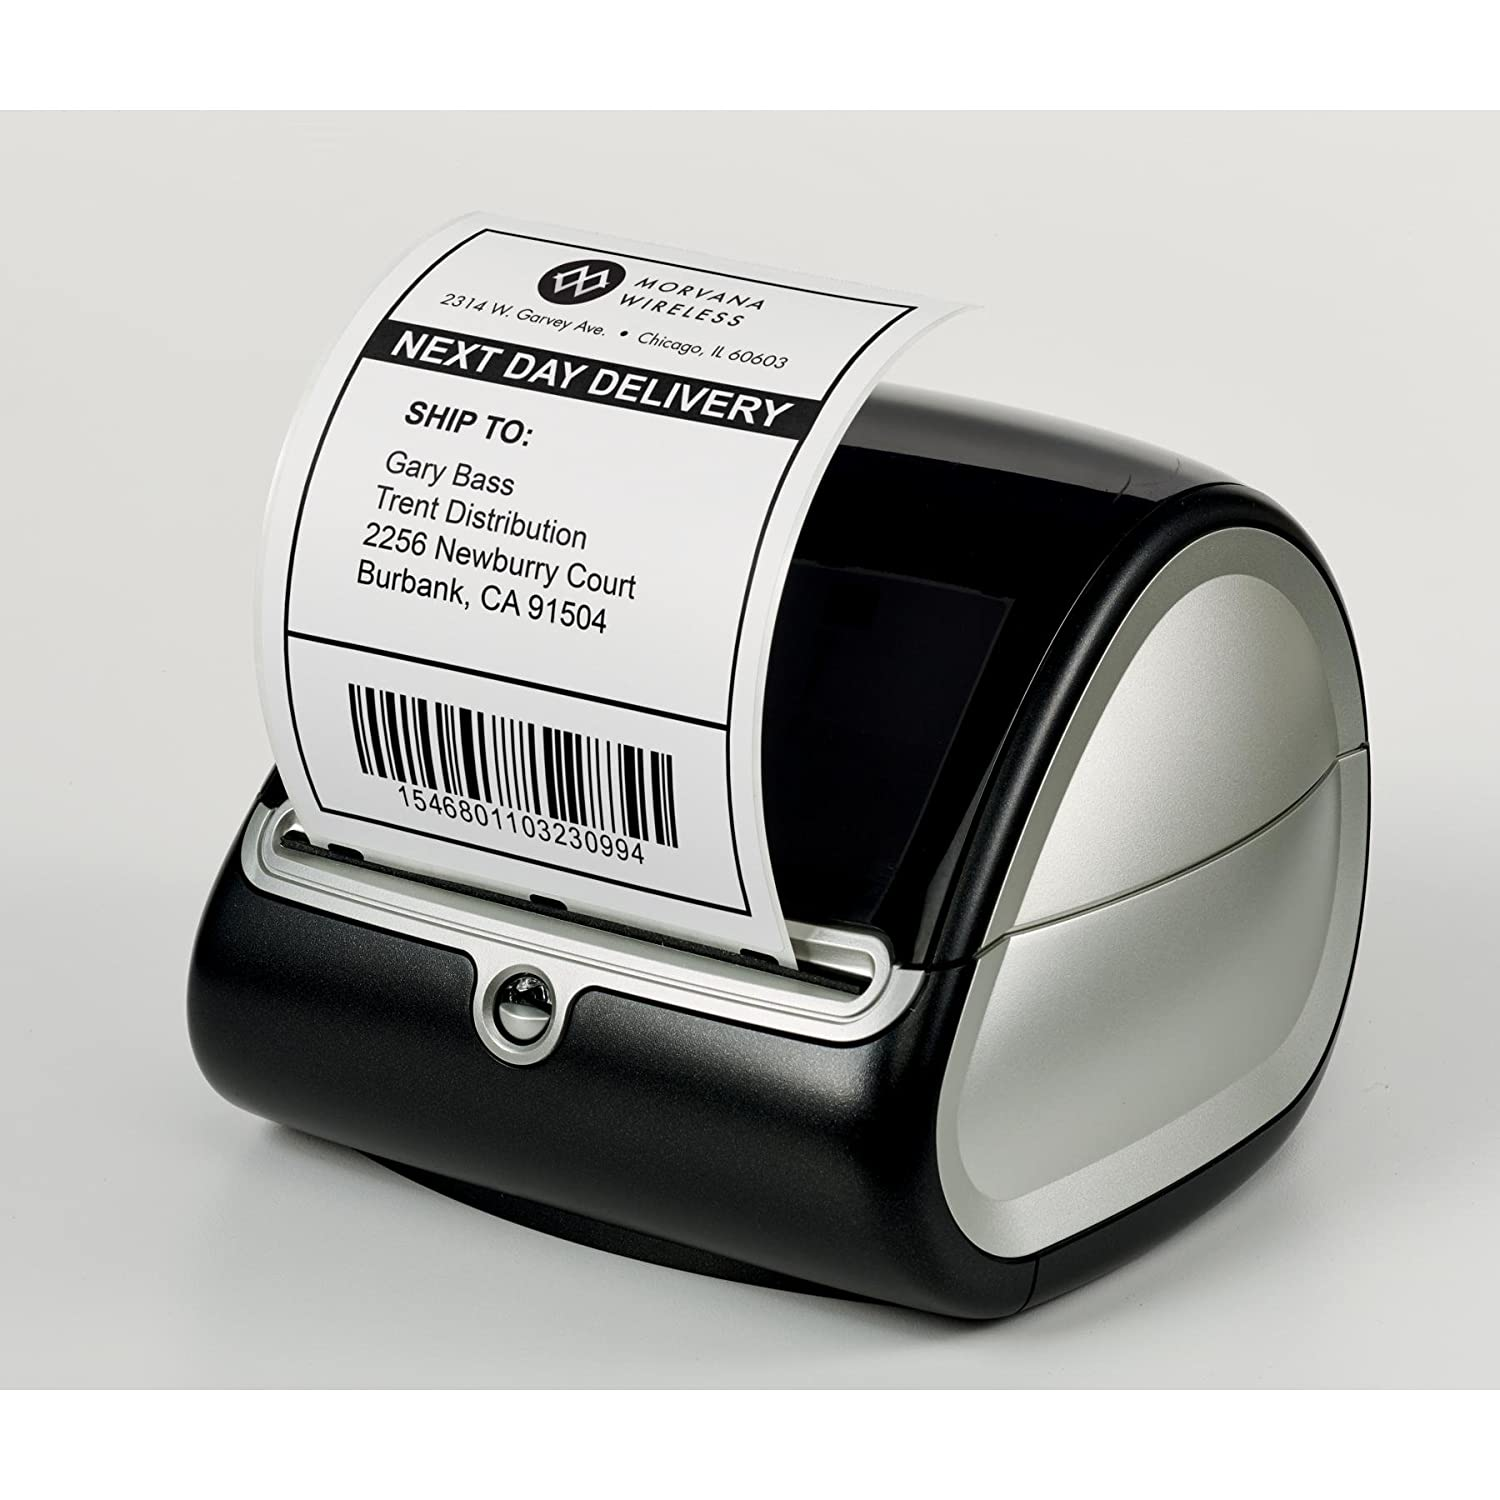 Amazon.com : Avery Shipping Labels For Dymo And Zebra Printers 4  Free Shipping Label Maker